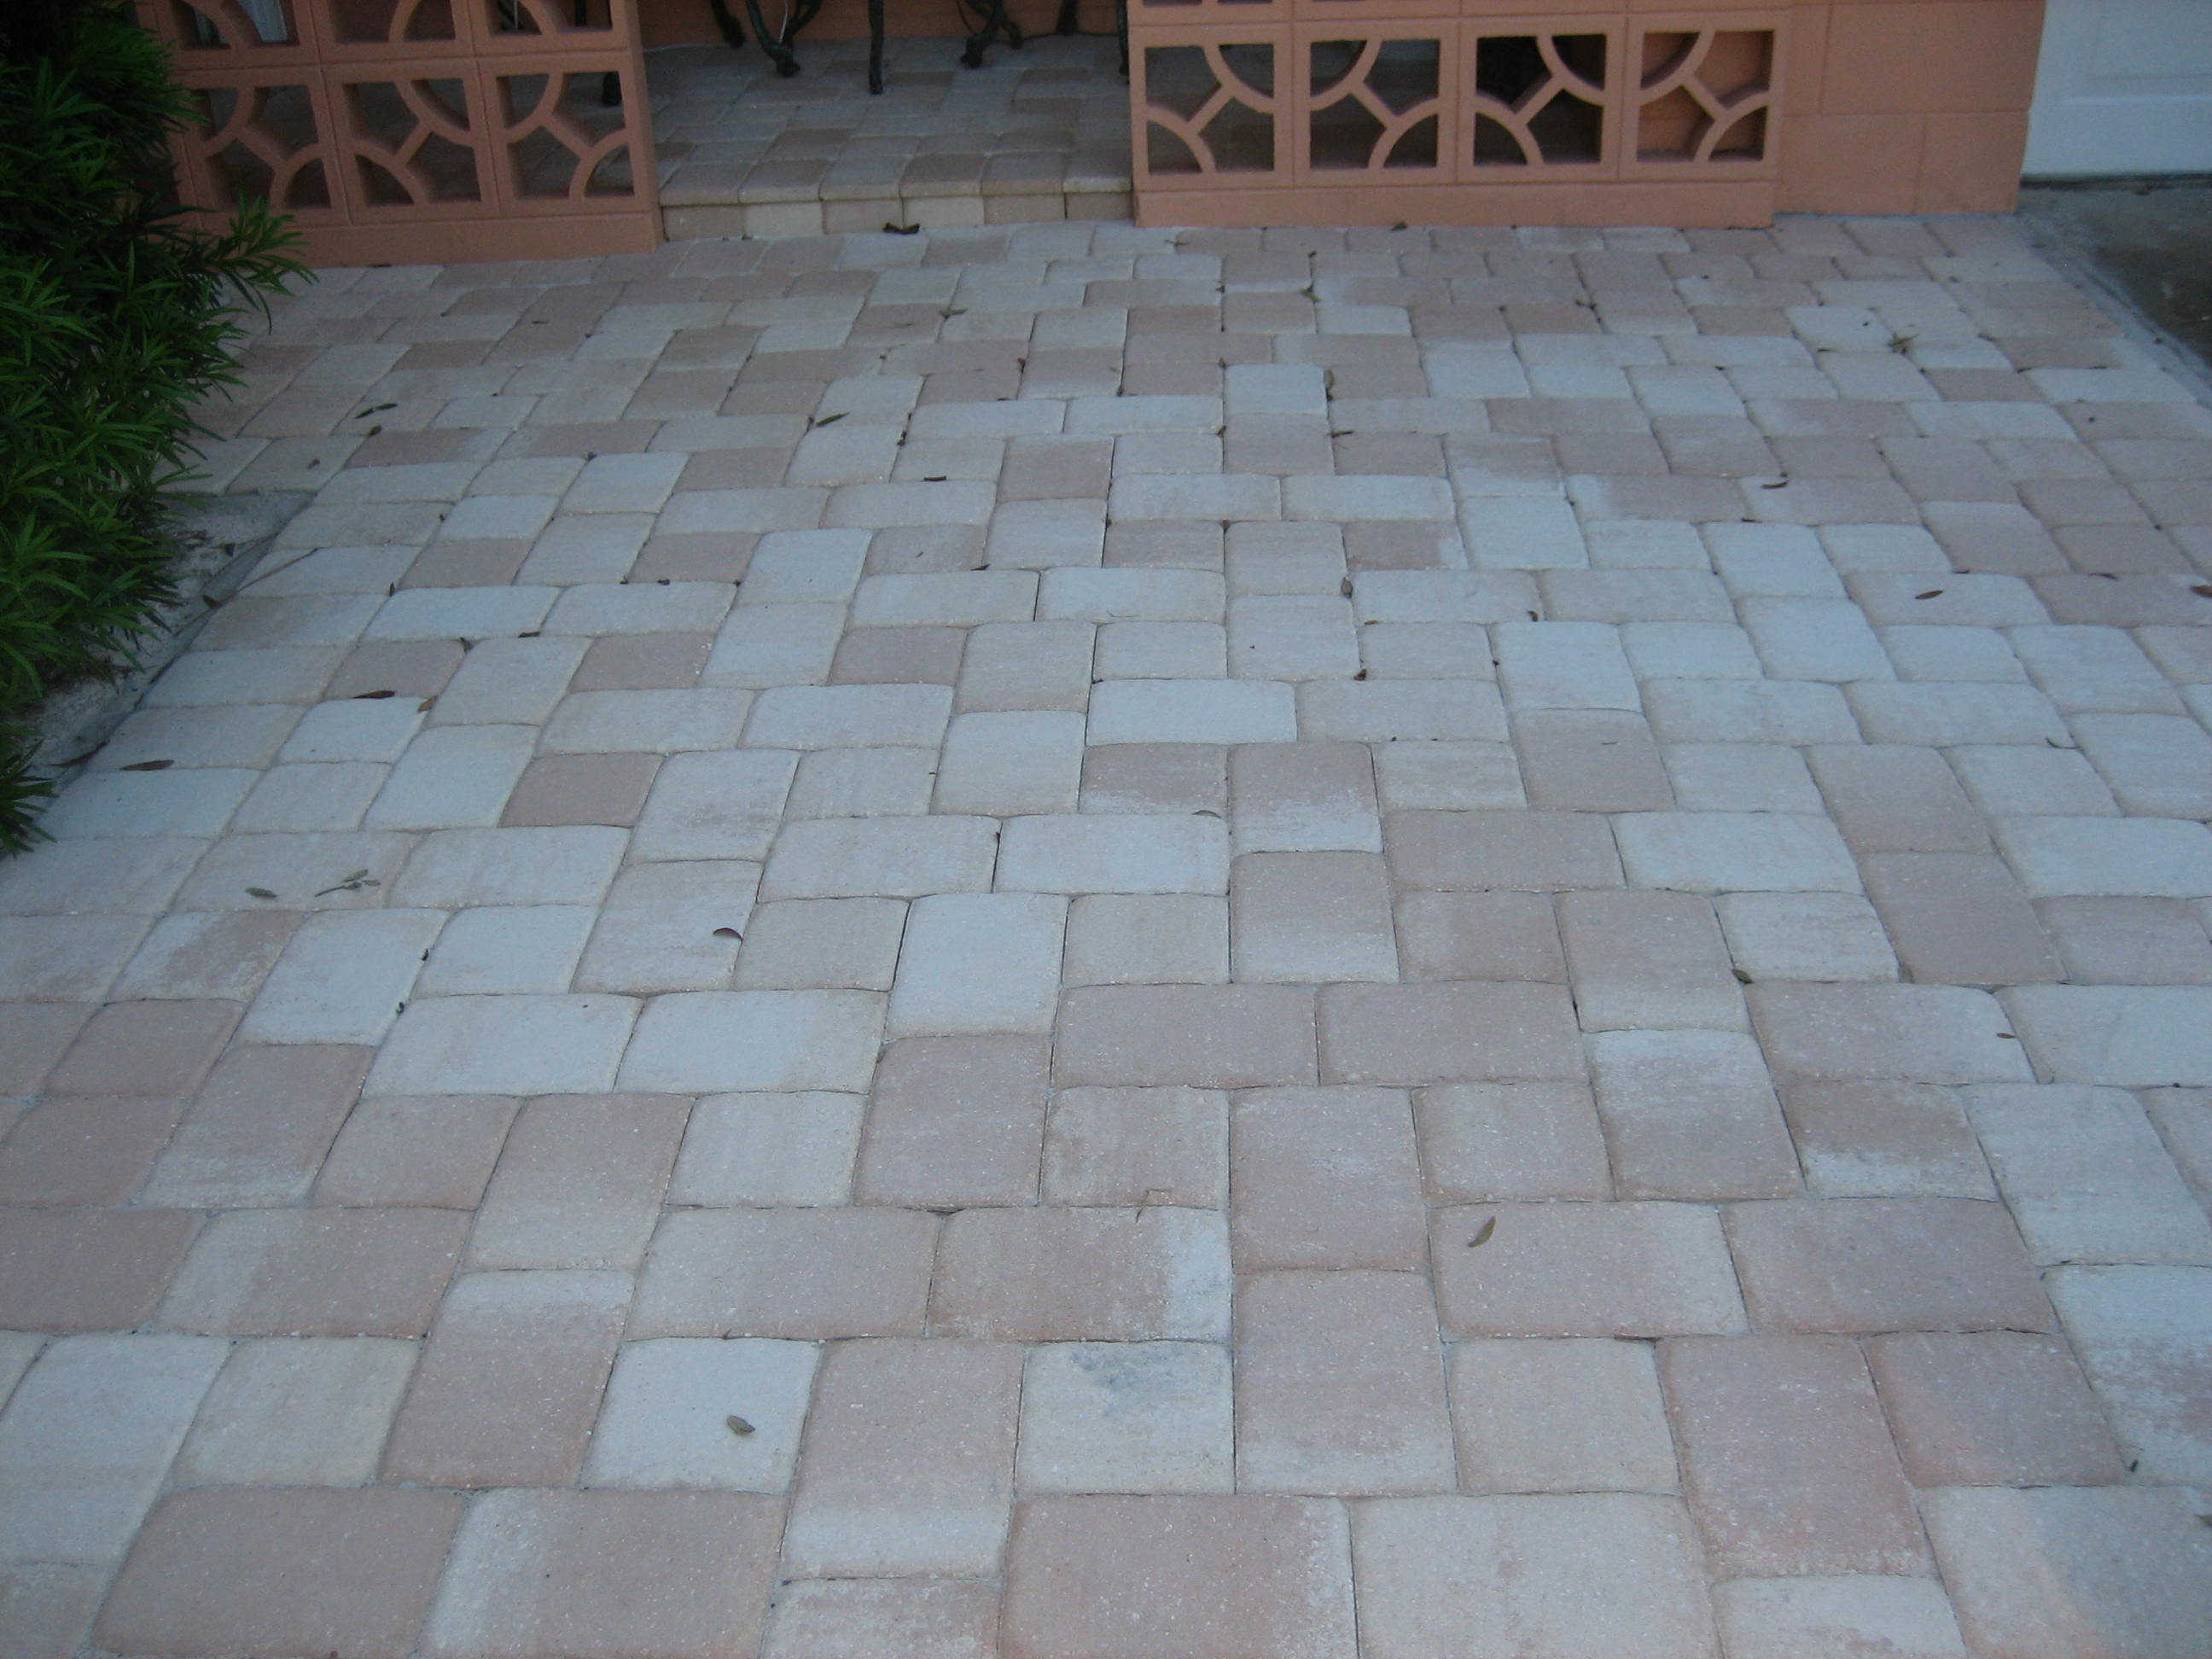 Paver Patios Rarely Use Concrete Base. Edging Is Done By Plastic, Usually  Covered With Mulch Or Grass, Not Easily Visible.